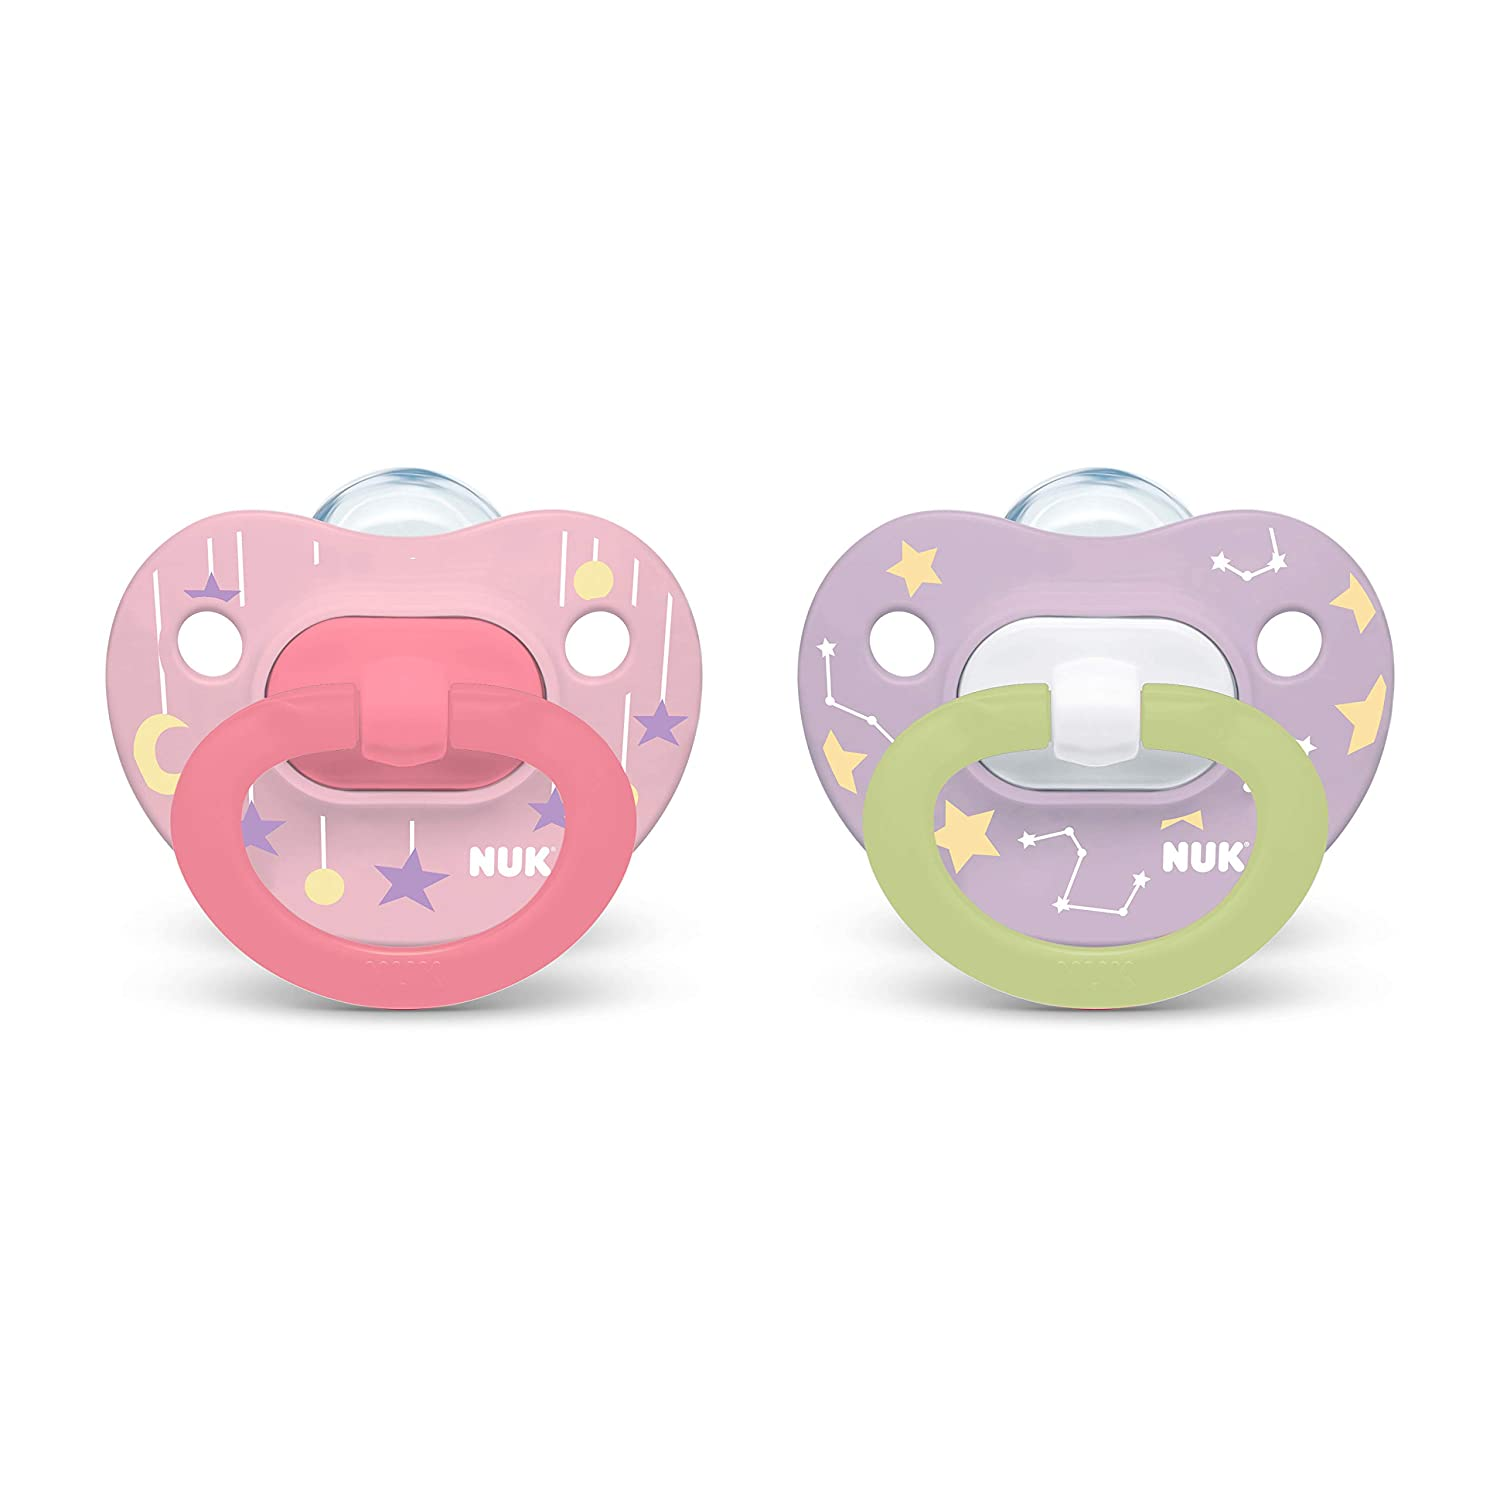 NUK Glow-in-The-Dark All stores are sold Popular shop is the lowest price challenge Orthodontic Pacifiers Zebra Pa 0-6 Month